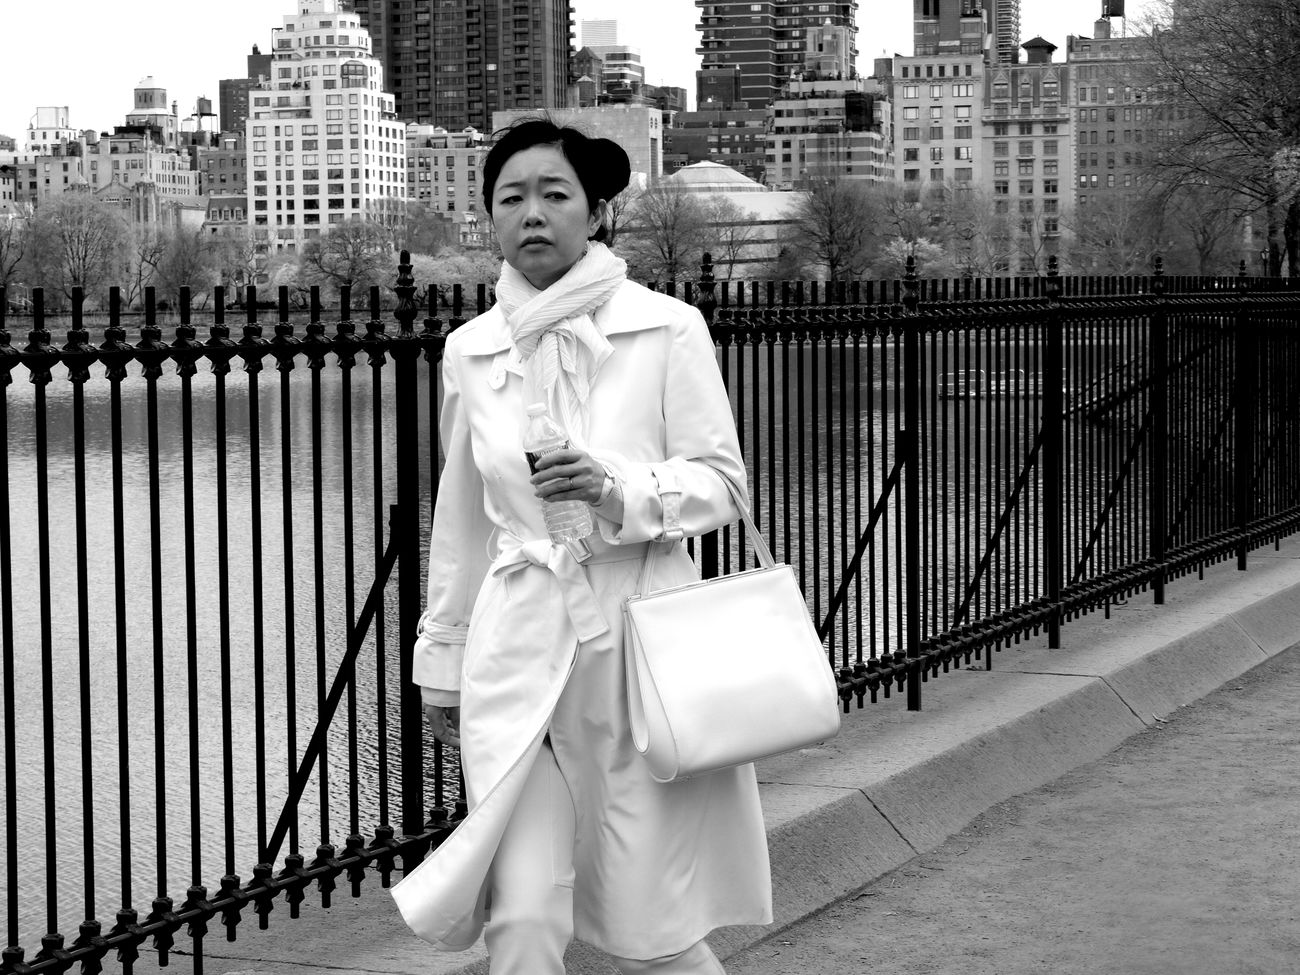 White Lady Blackandwhite Newyork Street Photography Black & White Streetphoto_bw